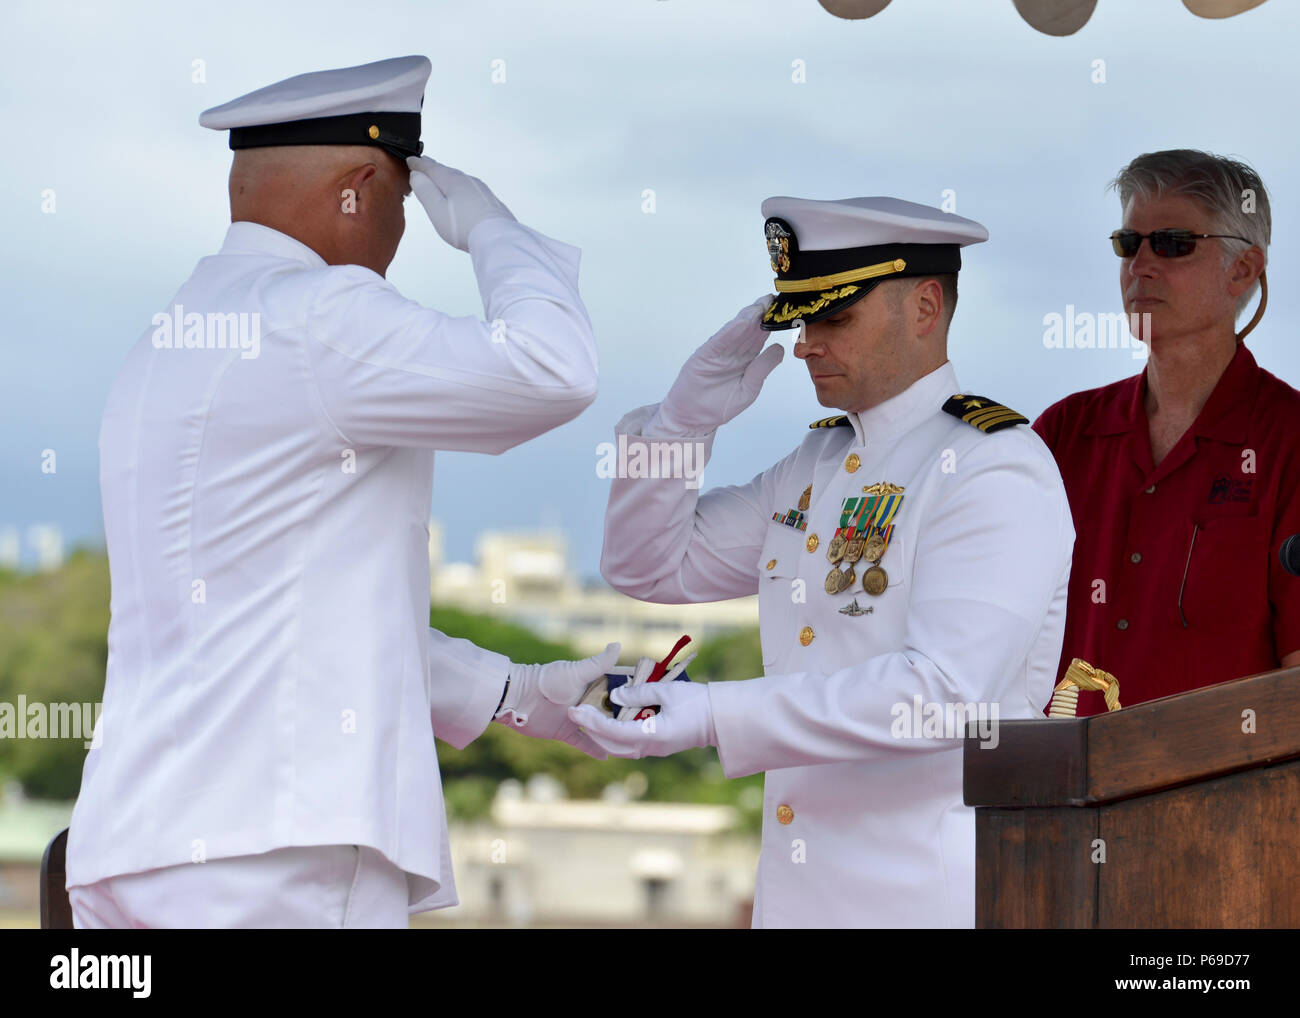 160530-N-LY160-424 JOINT BASE PEARL HARBOR-HICKAM, Hawaii (May 30, 2016) USS City of Corpus Christi's (SSN 705) chief of the boat, Master Chief Machinist's Mate Richard D. Magee, left, presents the ship's commissioning pennant to Cmdr. Travis M. Petzoldt, commanding officer of the Los Angeles-class fast-attack submarine, during a Memorial Day decommissioning ceremony at Joint Base Pearl Harbor-Hickam. City of Corpus Christi concluded 33 years of service as the second U.S. warship to be named after Corpus Christi, Texas. (U.S. Navy photo by Mass Communication Specialist 2nd Class Michael H. Lee - Stock Image